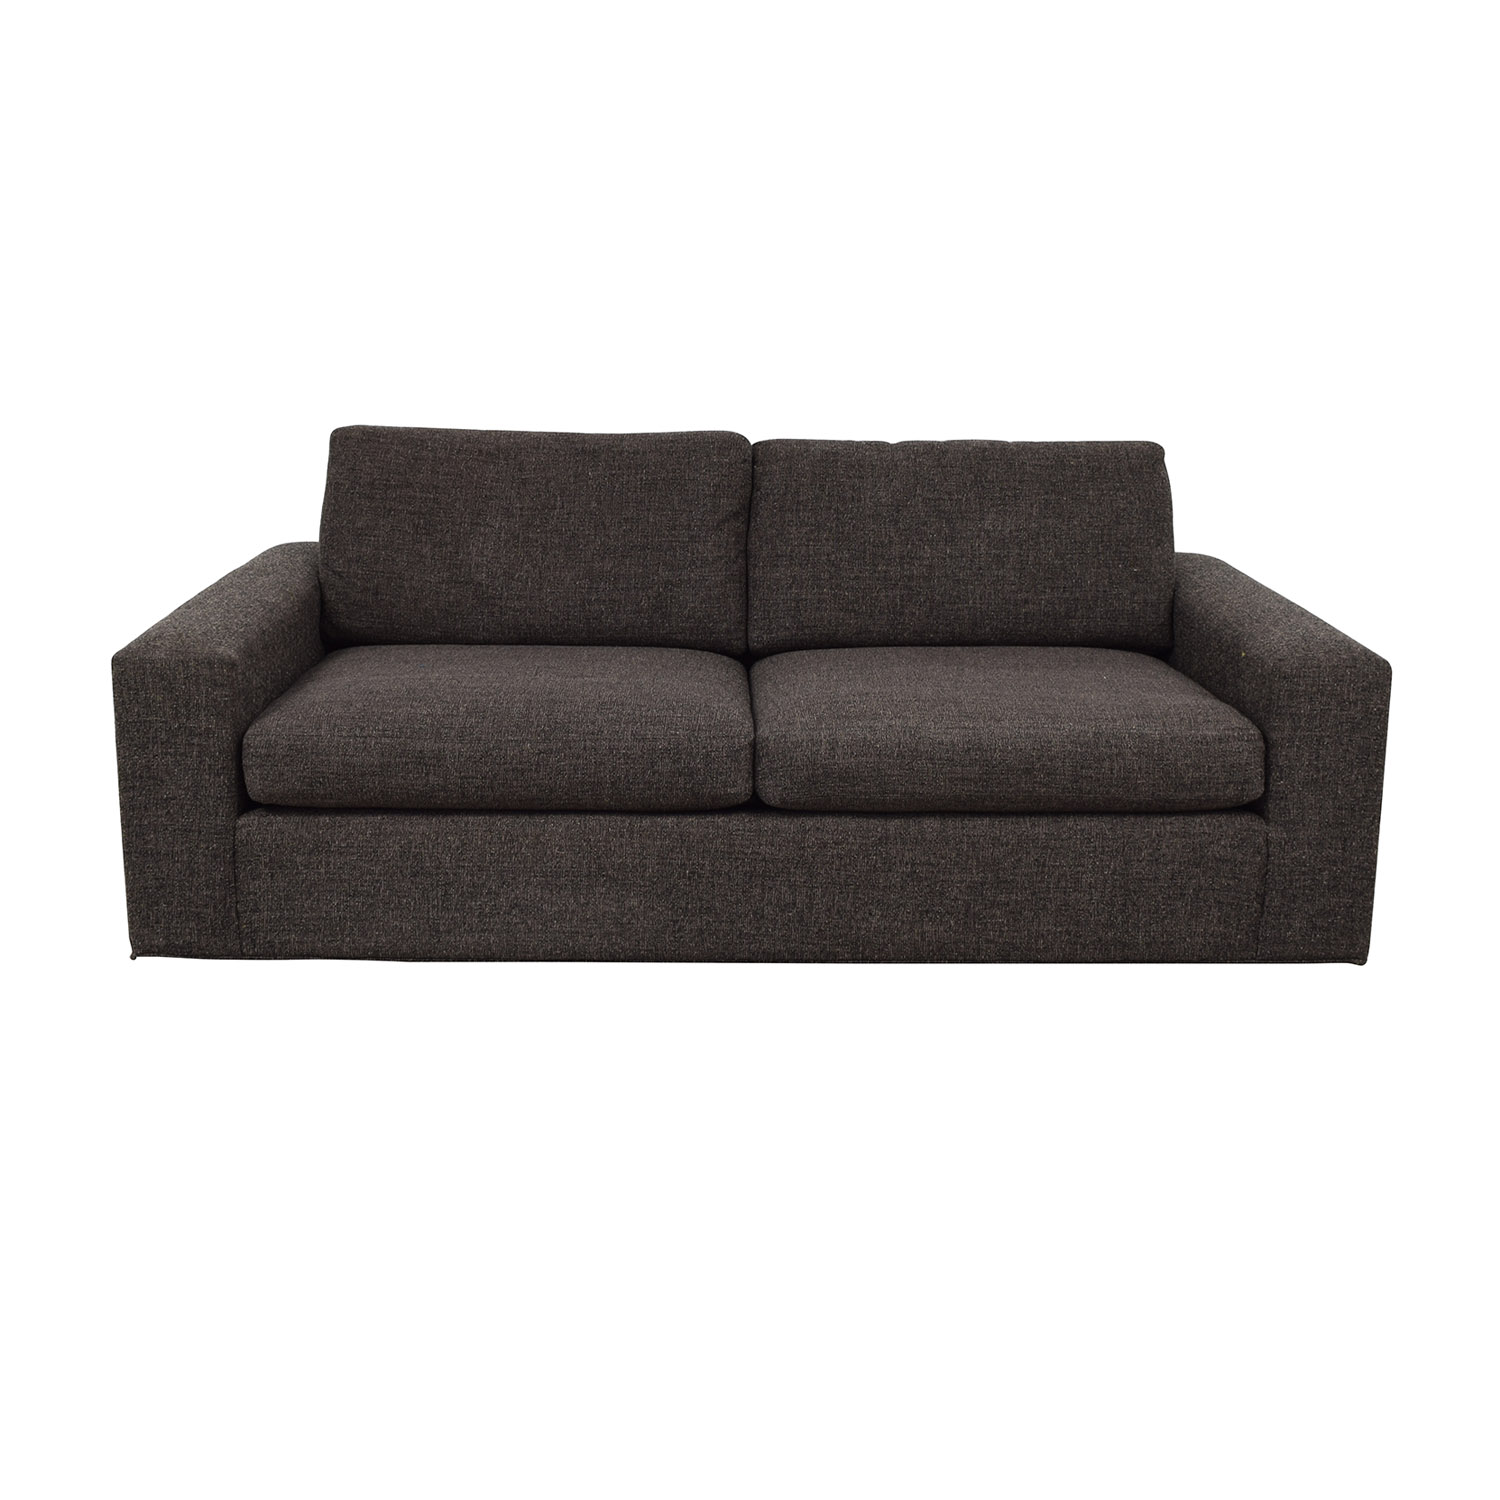 Room & Board Metro Grey Tweed Two-Cushion Sofa / Classic Sofas